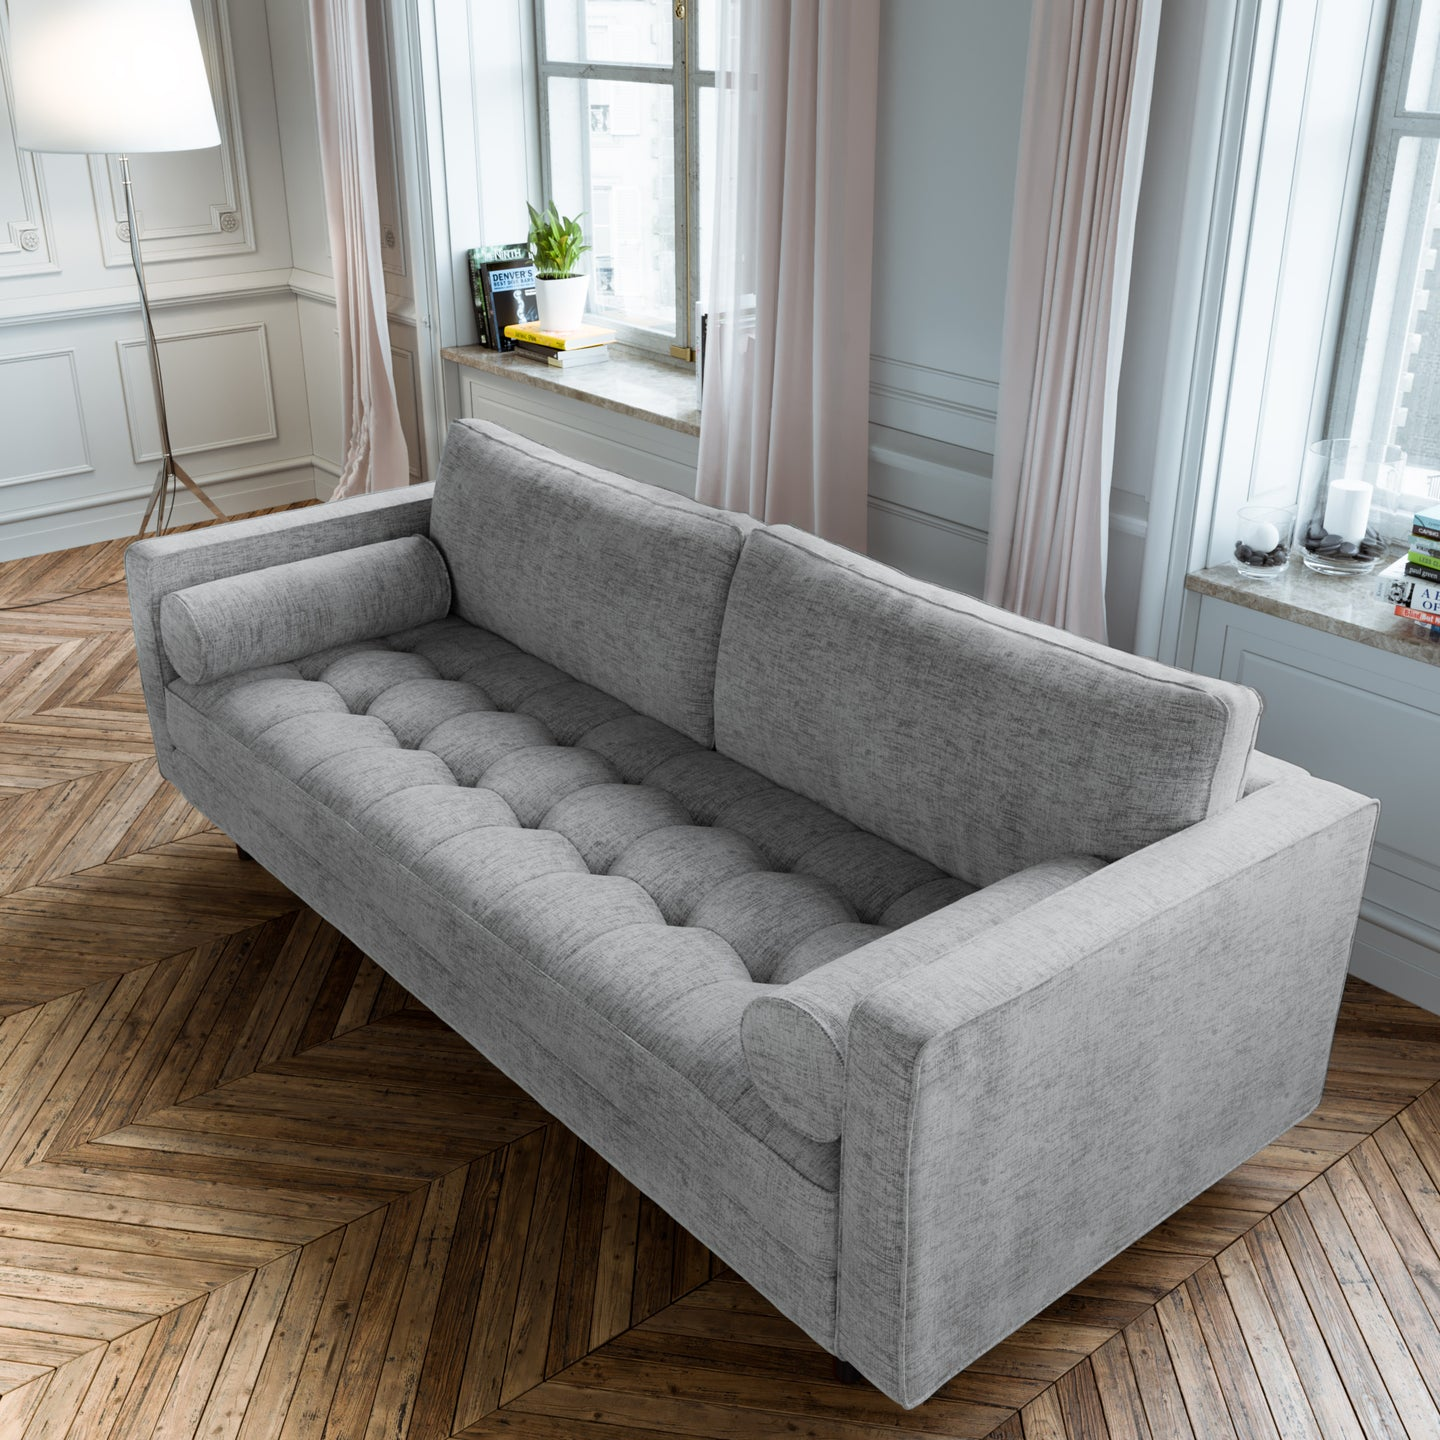 Scandormi Sofa - Grey Weave